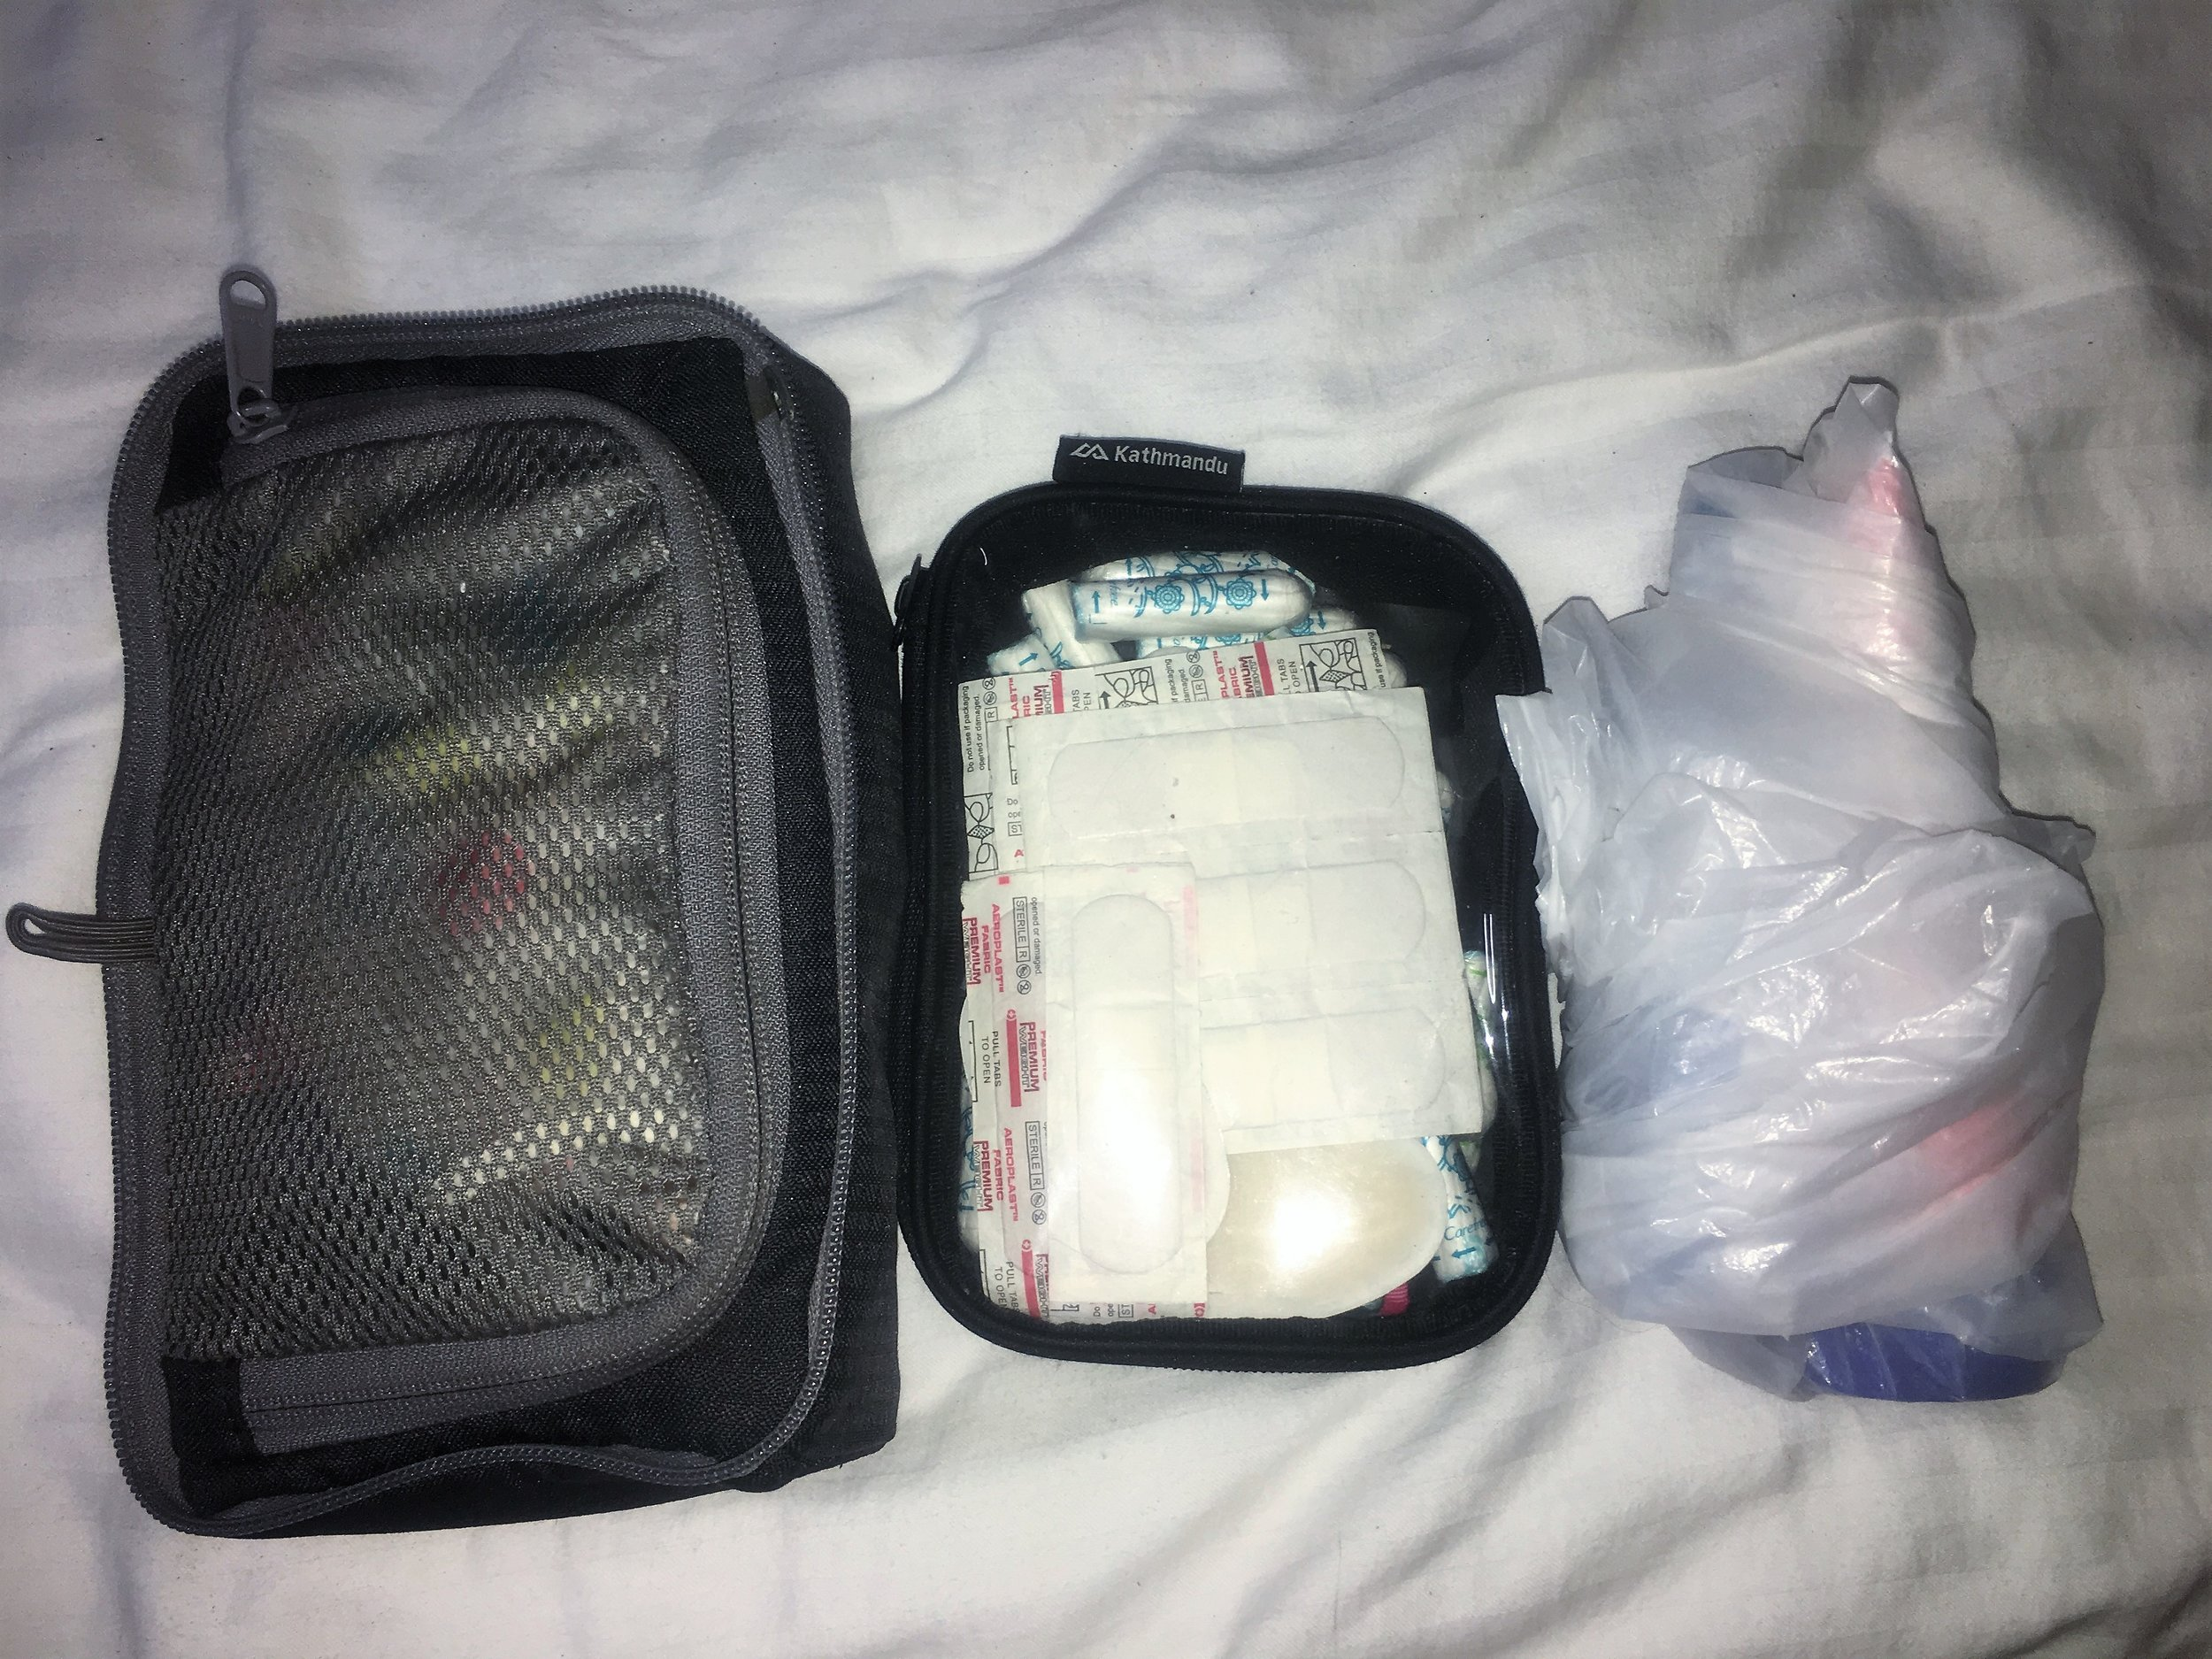 Toiletries all packed